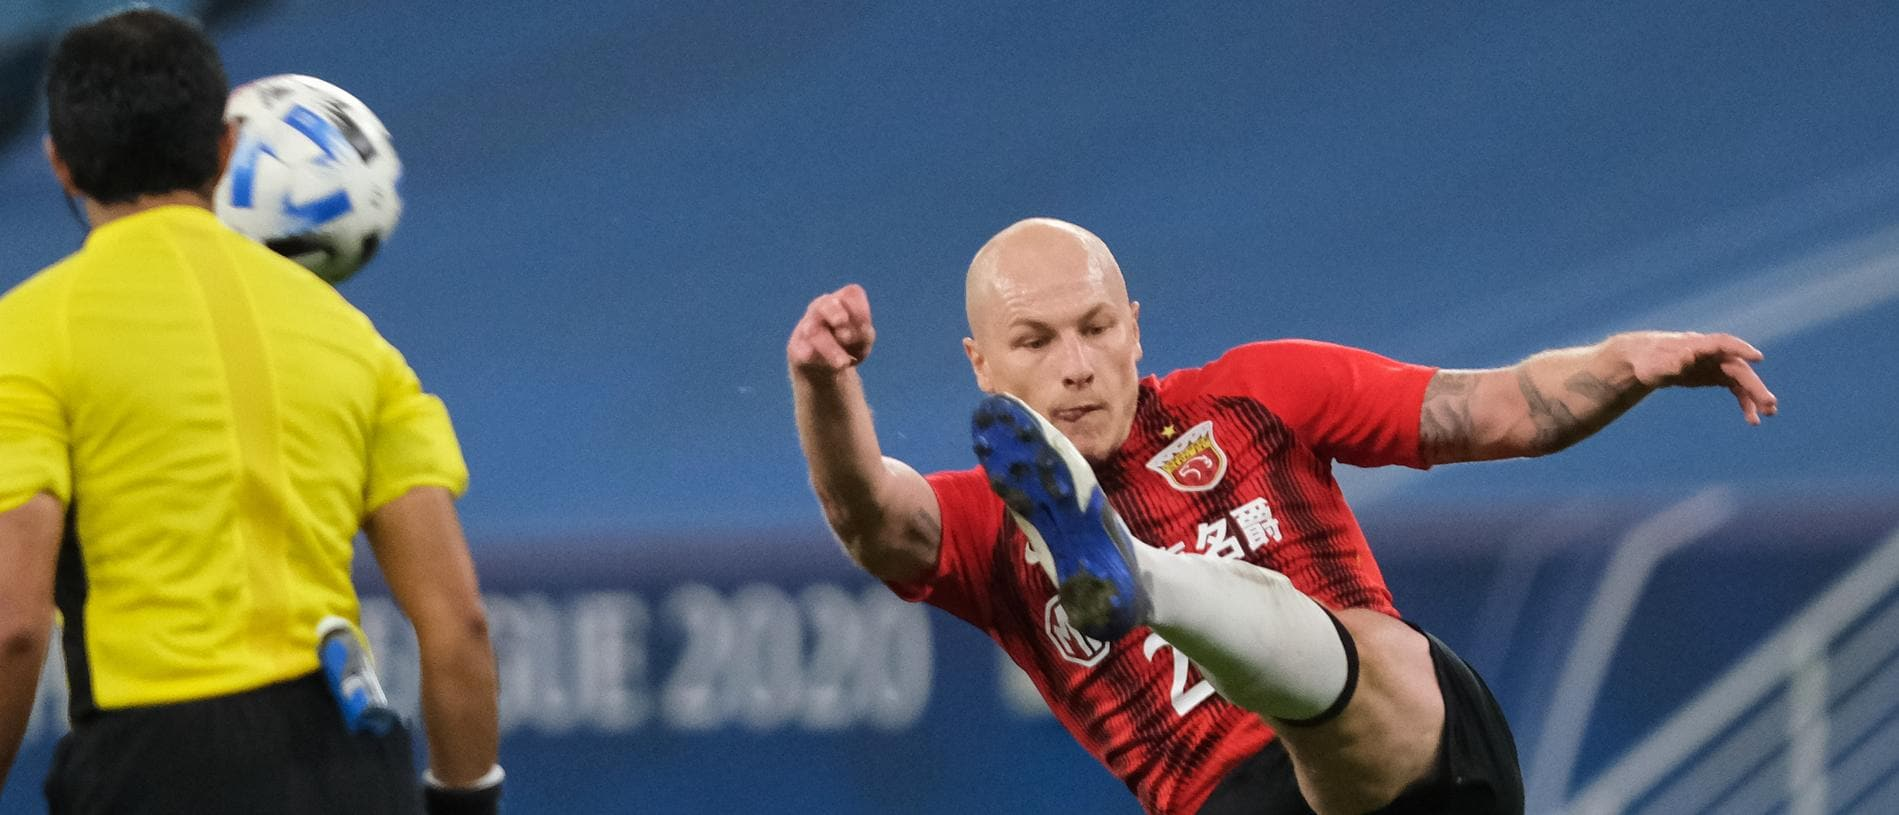 AL WAKRAH, QATAR - NOVEMBER 28: Aaron Mooy of Shanghai SIPG hooks the ball clear during the AFC Champions League Group H match between Yokohama F.Marinos and Shanghai SIPG at the Al Janoub Stadium on November 28, 2020 in Al Wakrah, Qatar. (Photo by Simon Holmes/Getty Images)